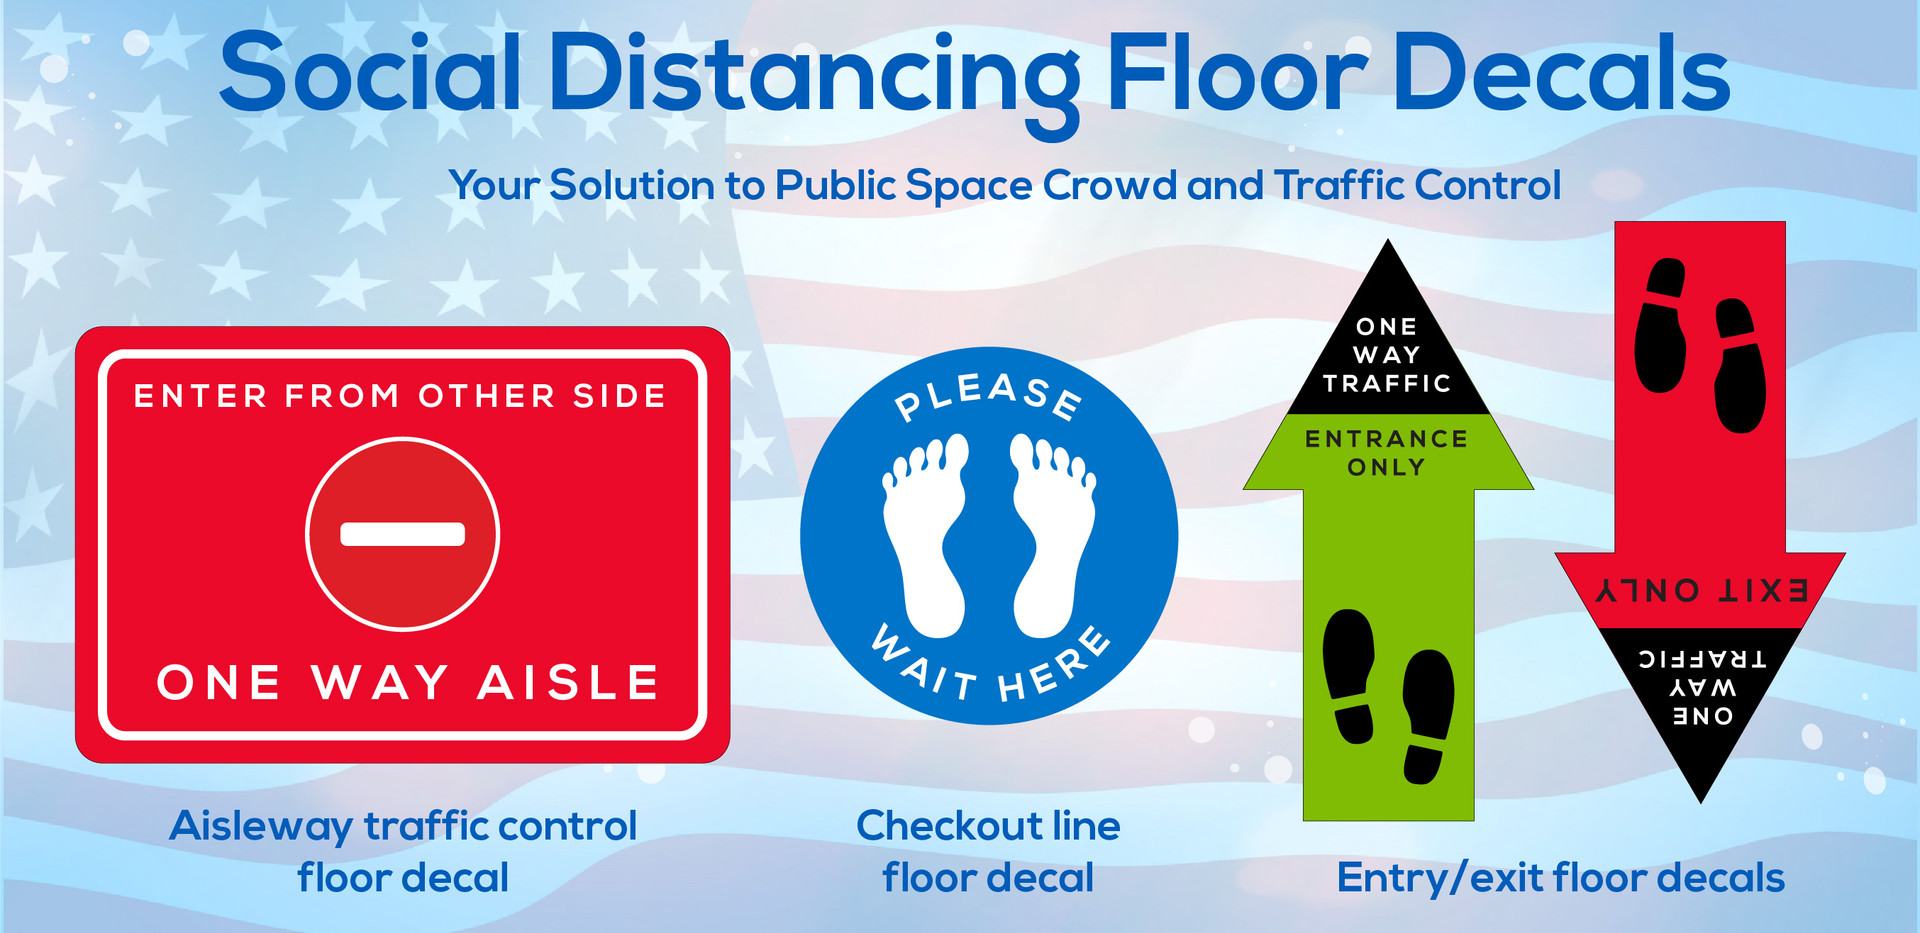 Social distancing floor decals are slip resistant and your solution to crowd and traffic control in public spaces.